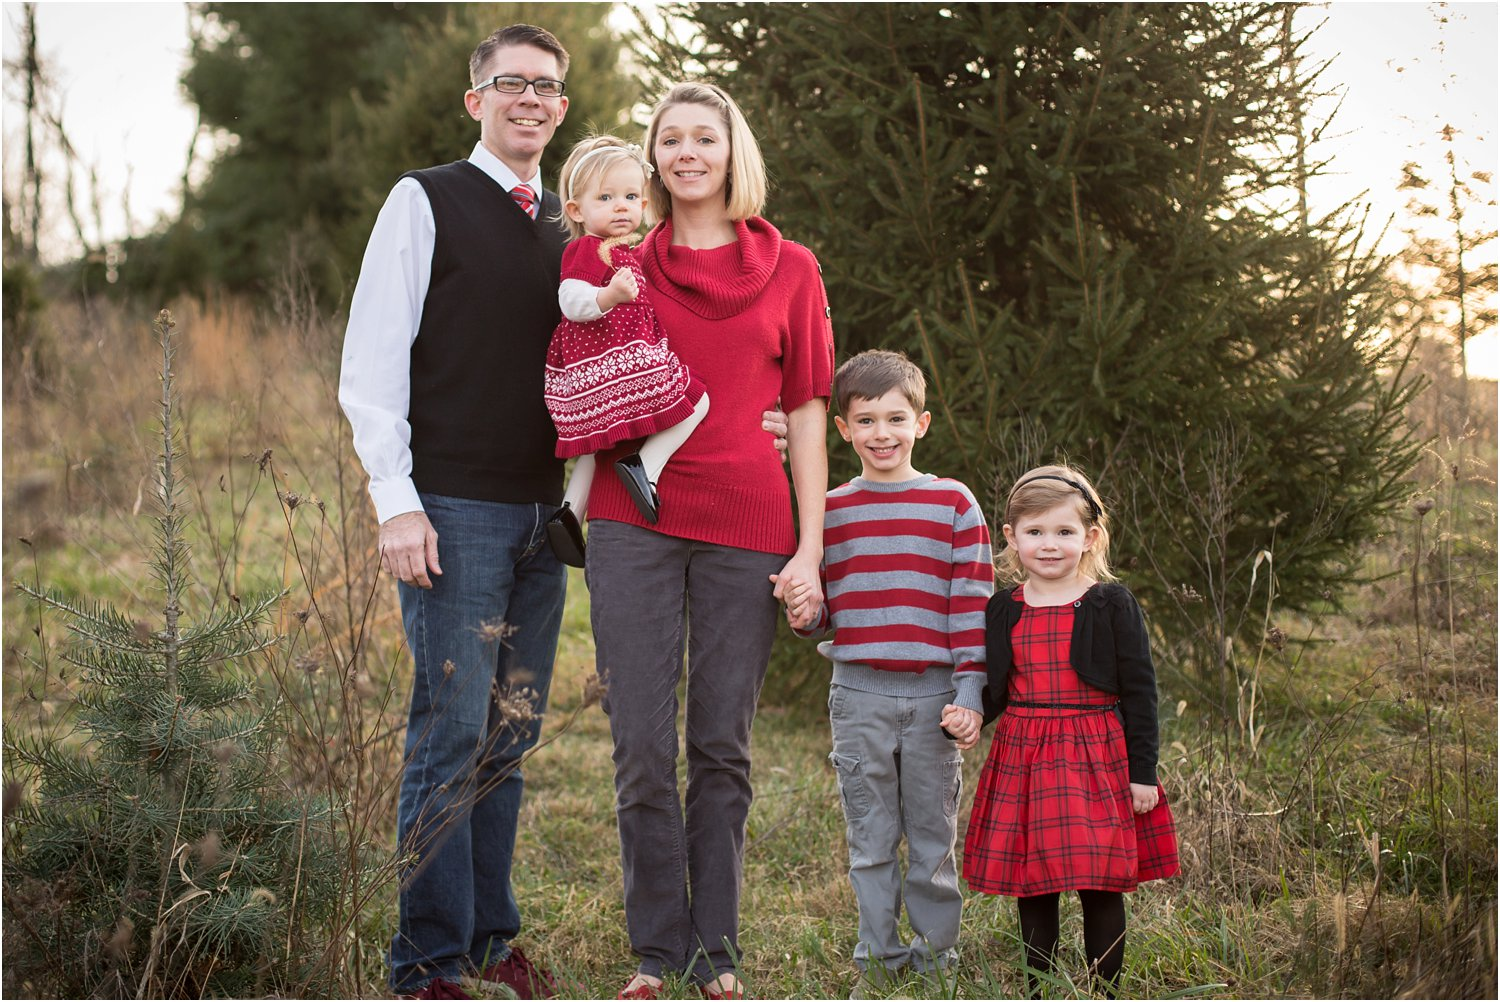 Evergreen_Christmas_Tree_Farm_Family_Portraits_0001.jpg